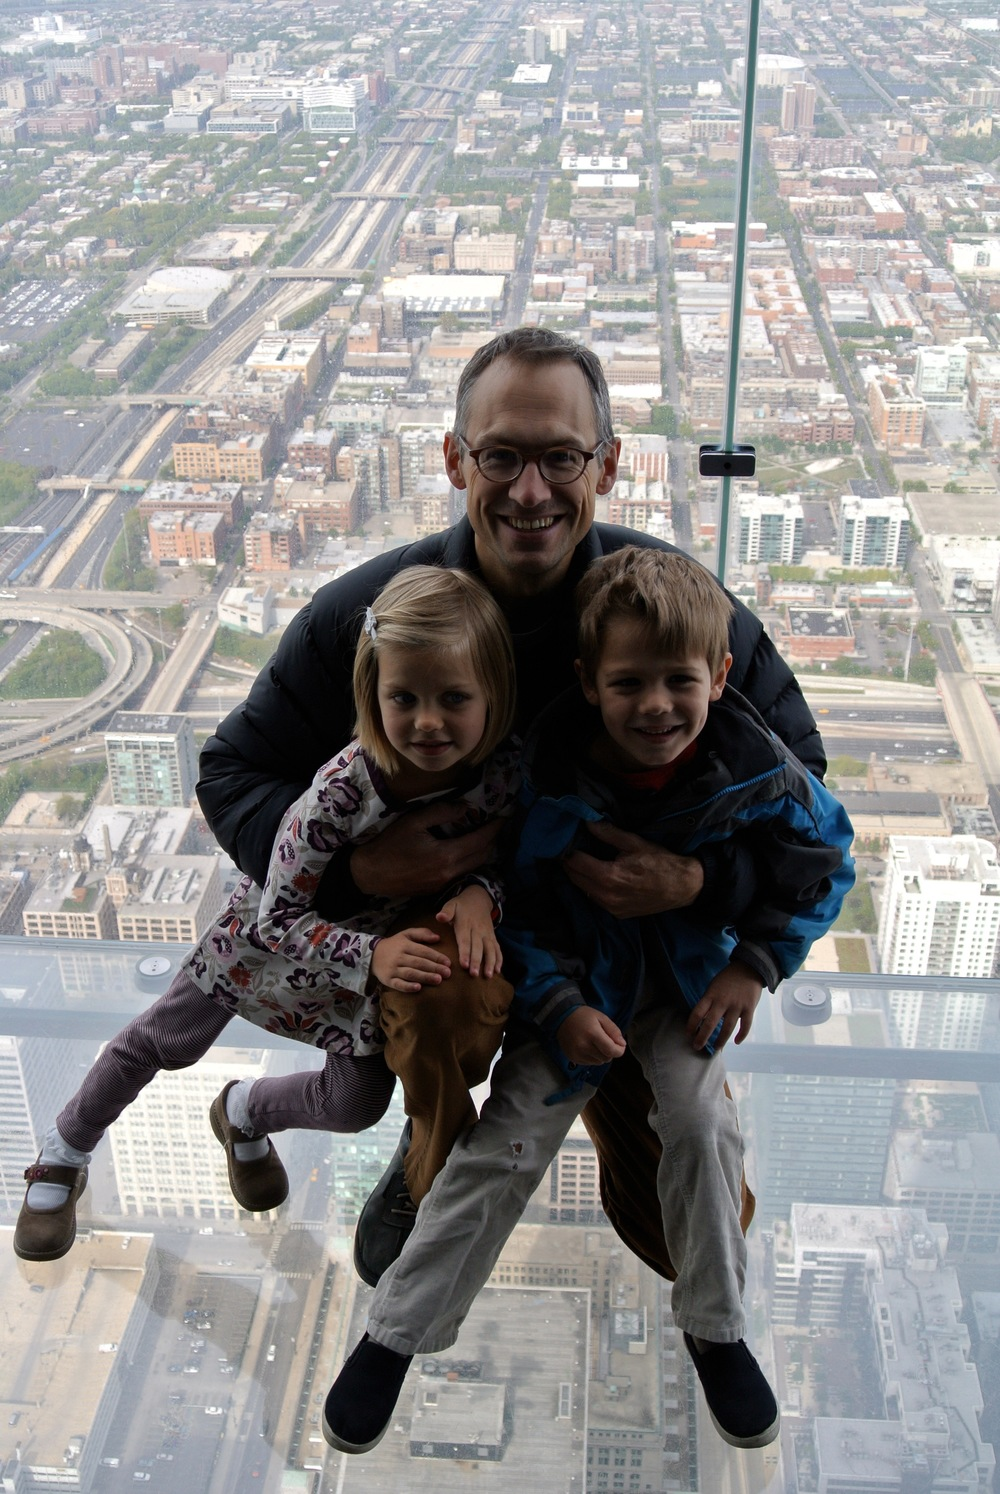 Being a stay-at-home dad is serious business, even 1500 feet above Chicago.